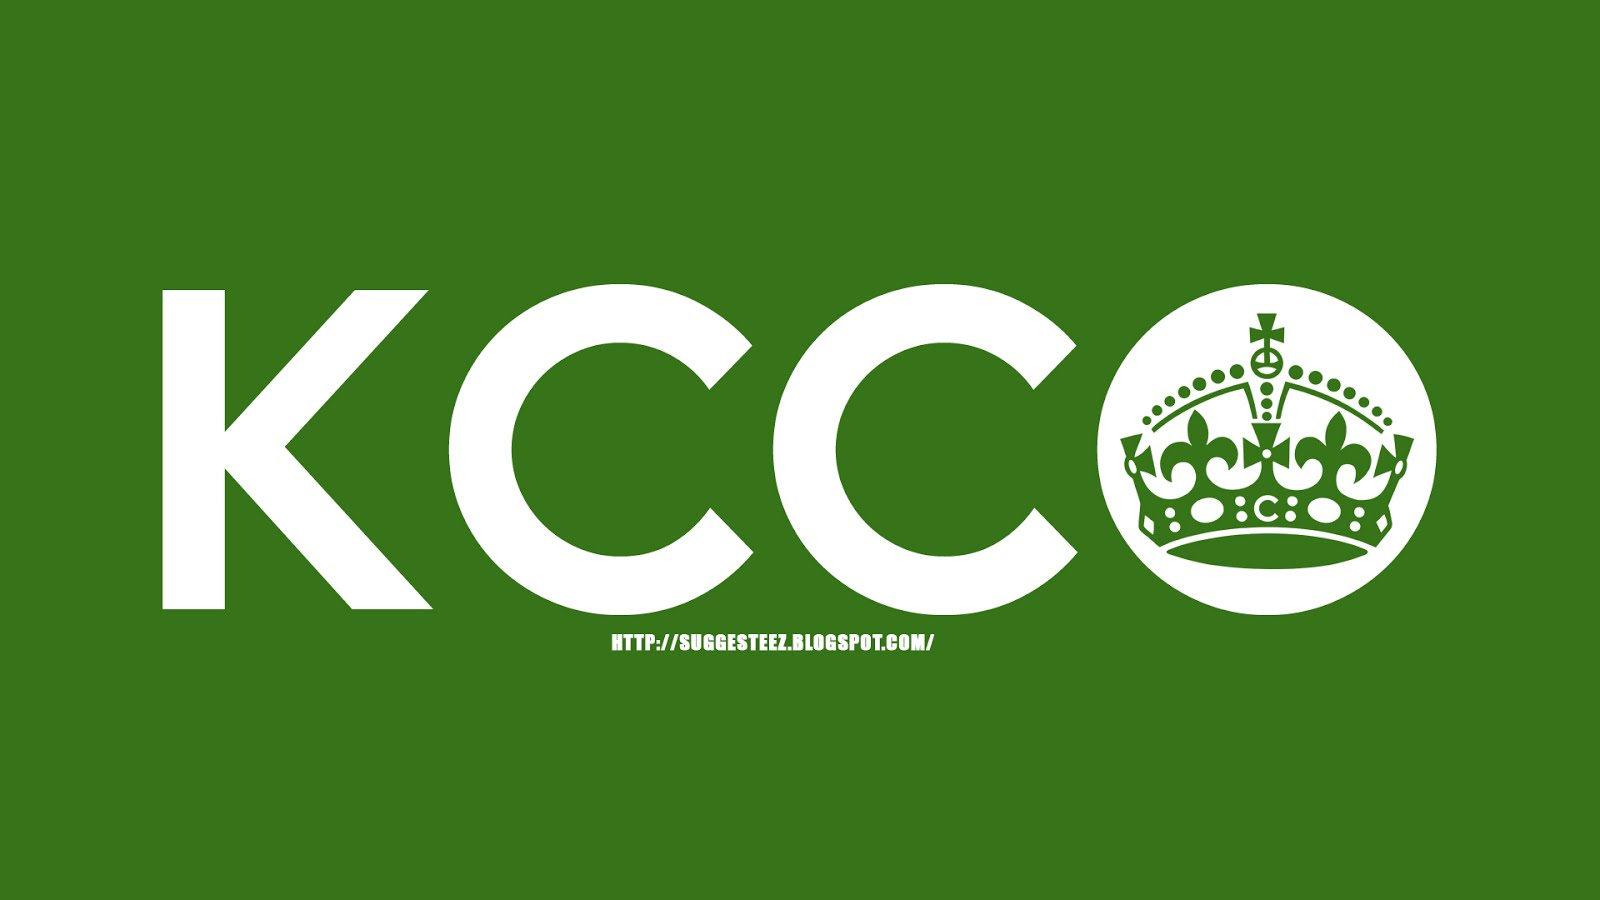 Kcco Crown With Classic Shirt 1600x900